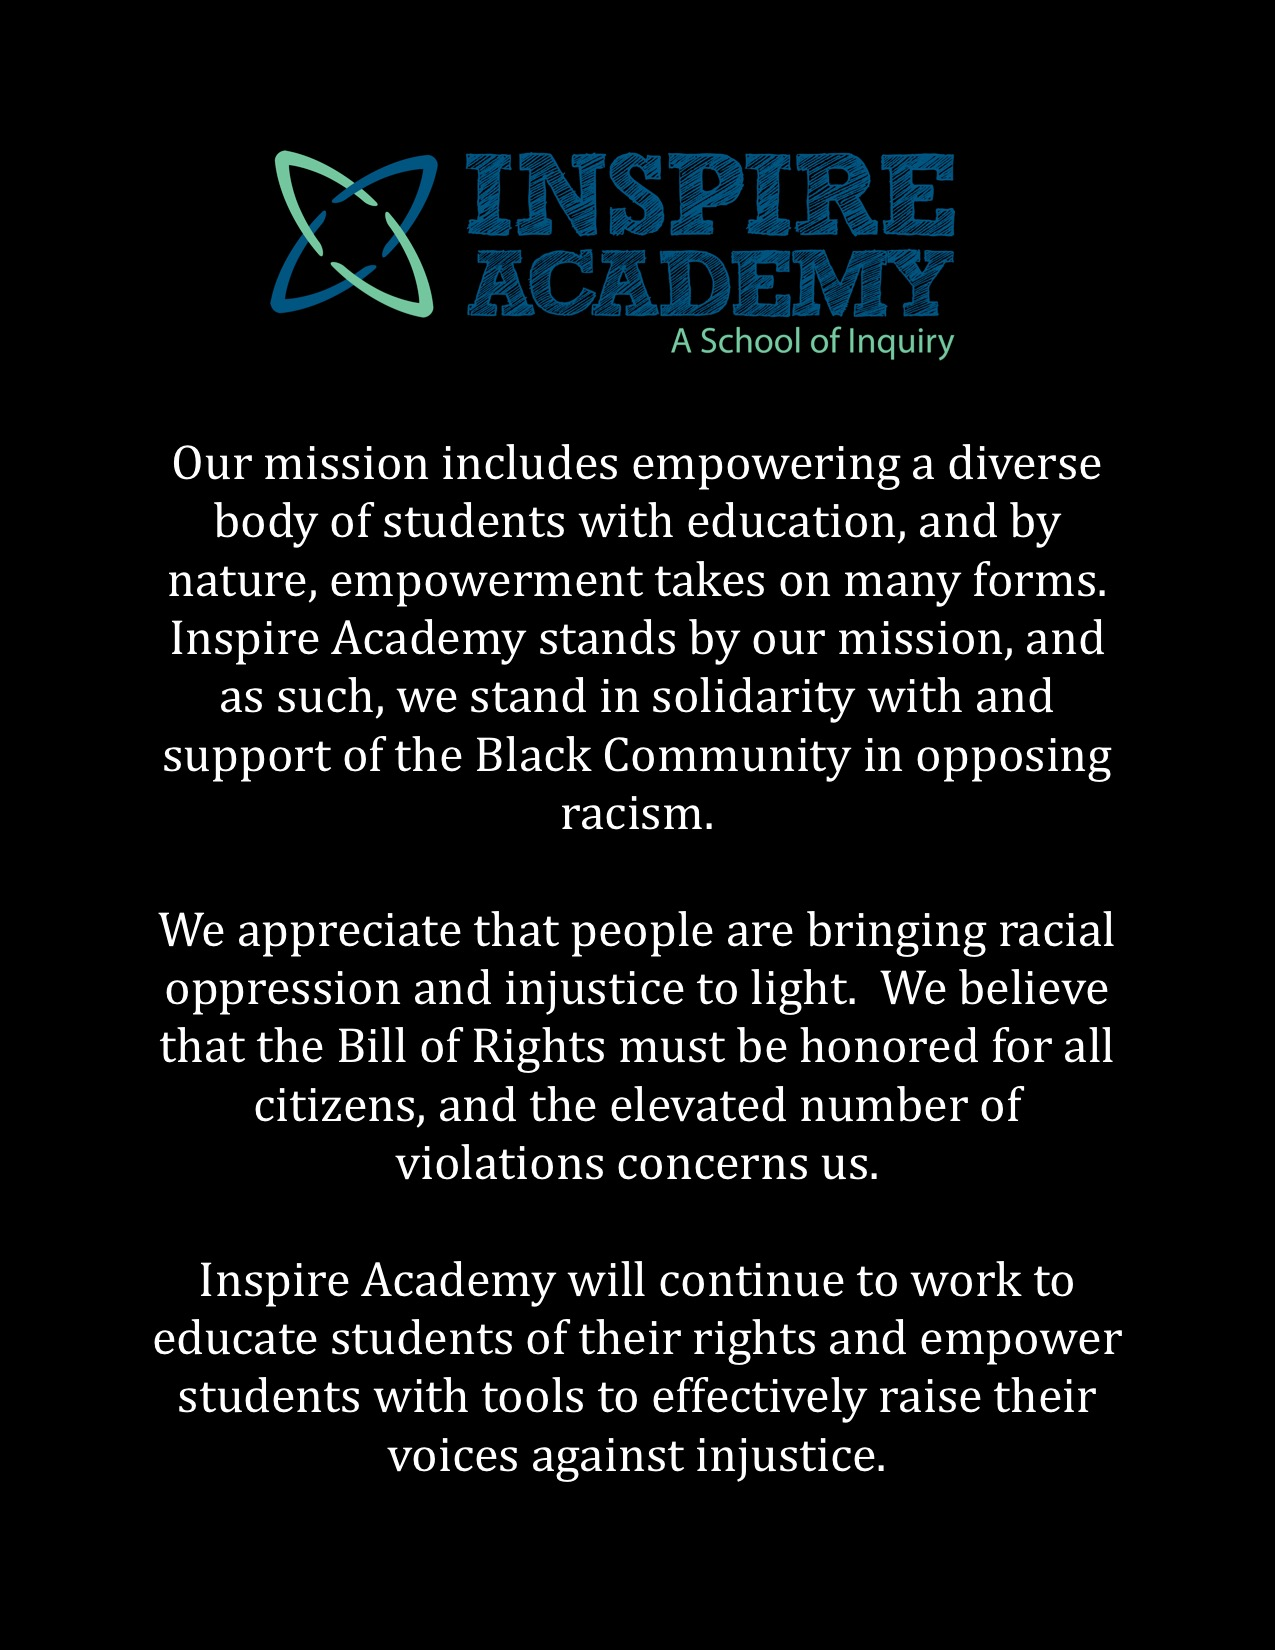 Inspire Academy stands in solidarity with and will support the Black Community